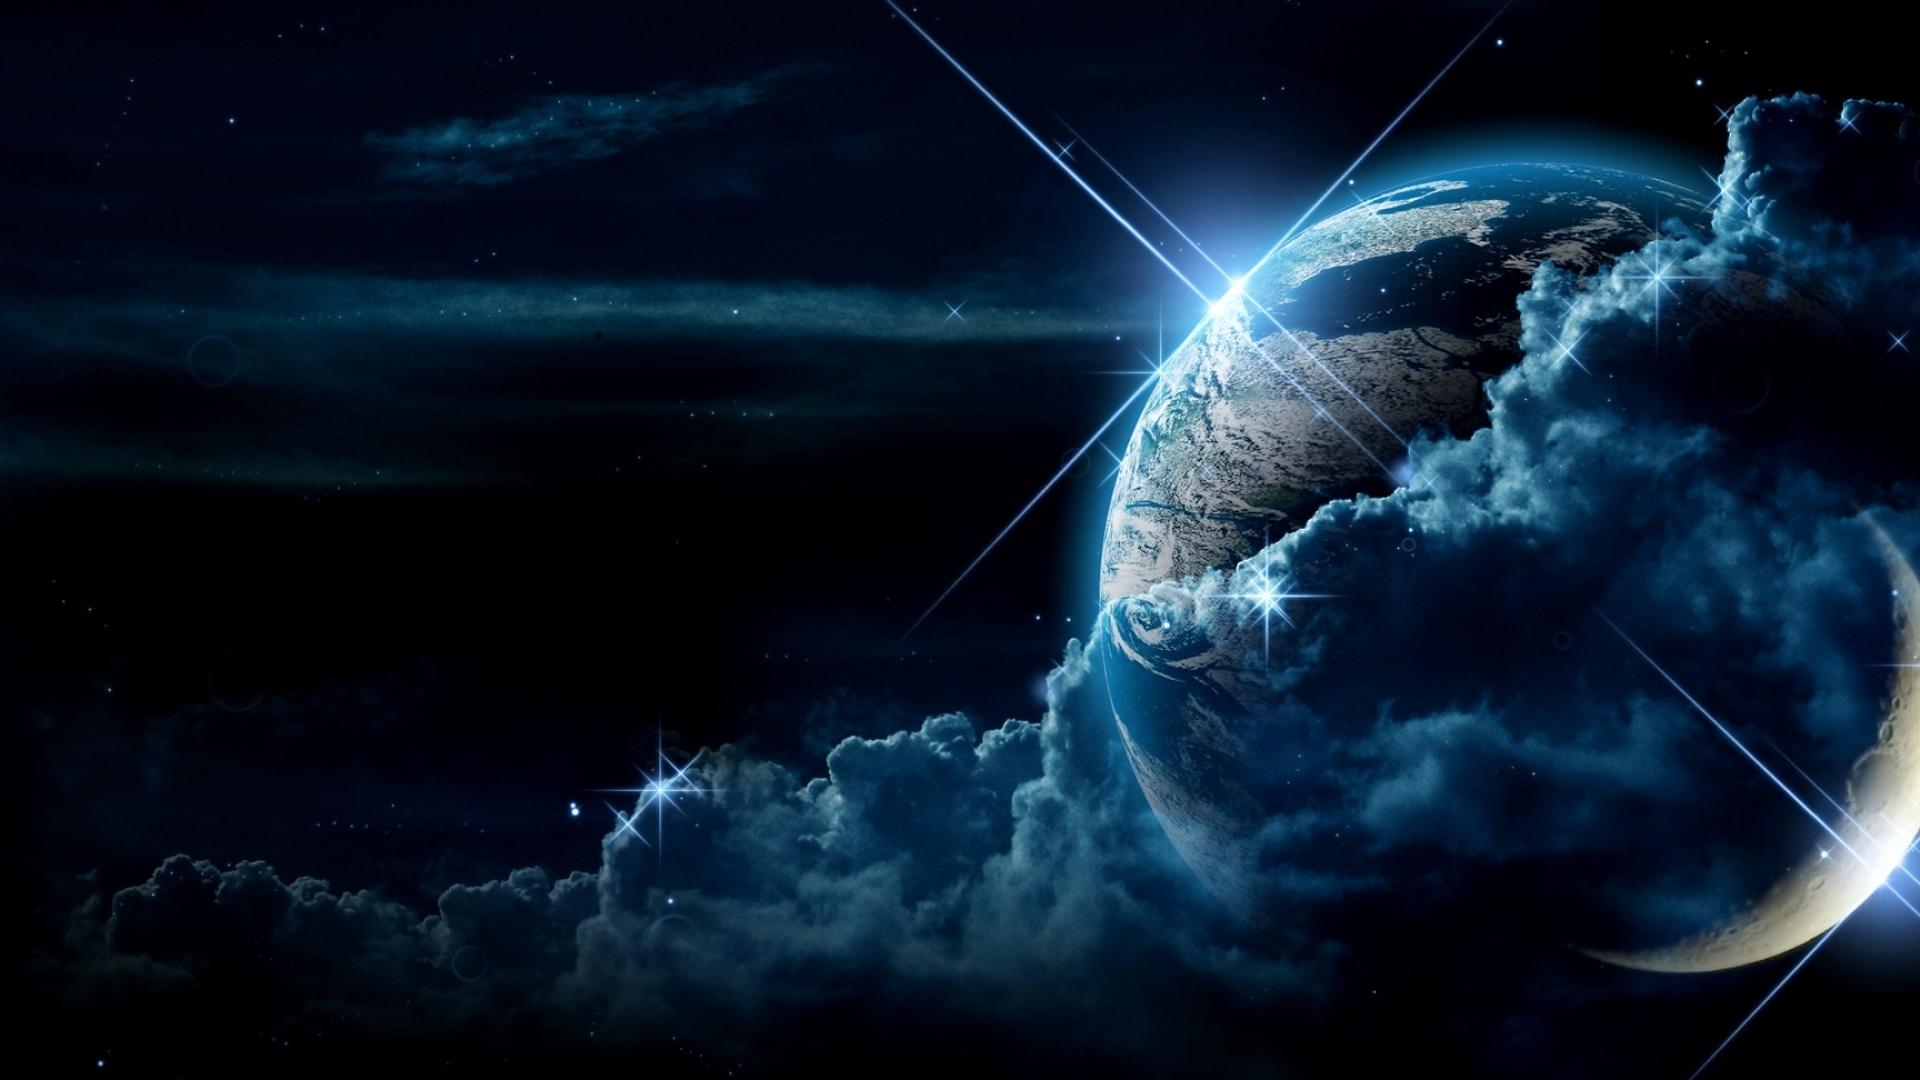 Cool Pictures Earth in Space 1585 Kb